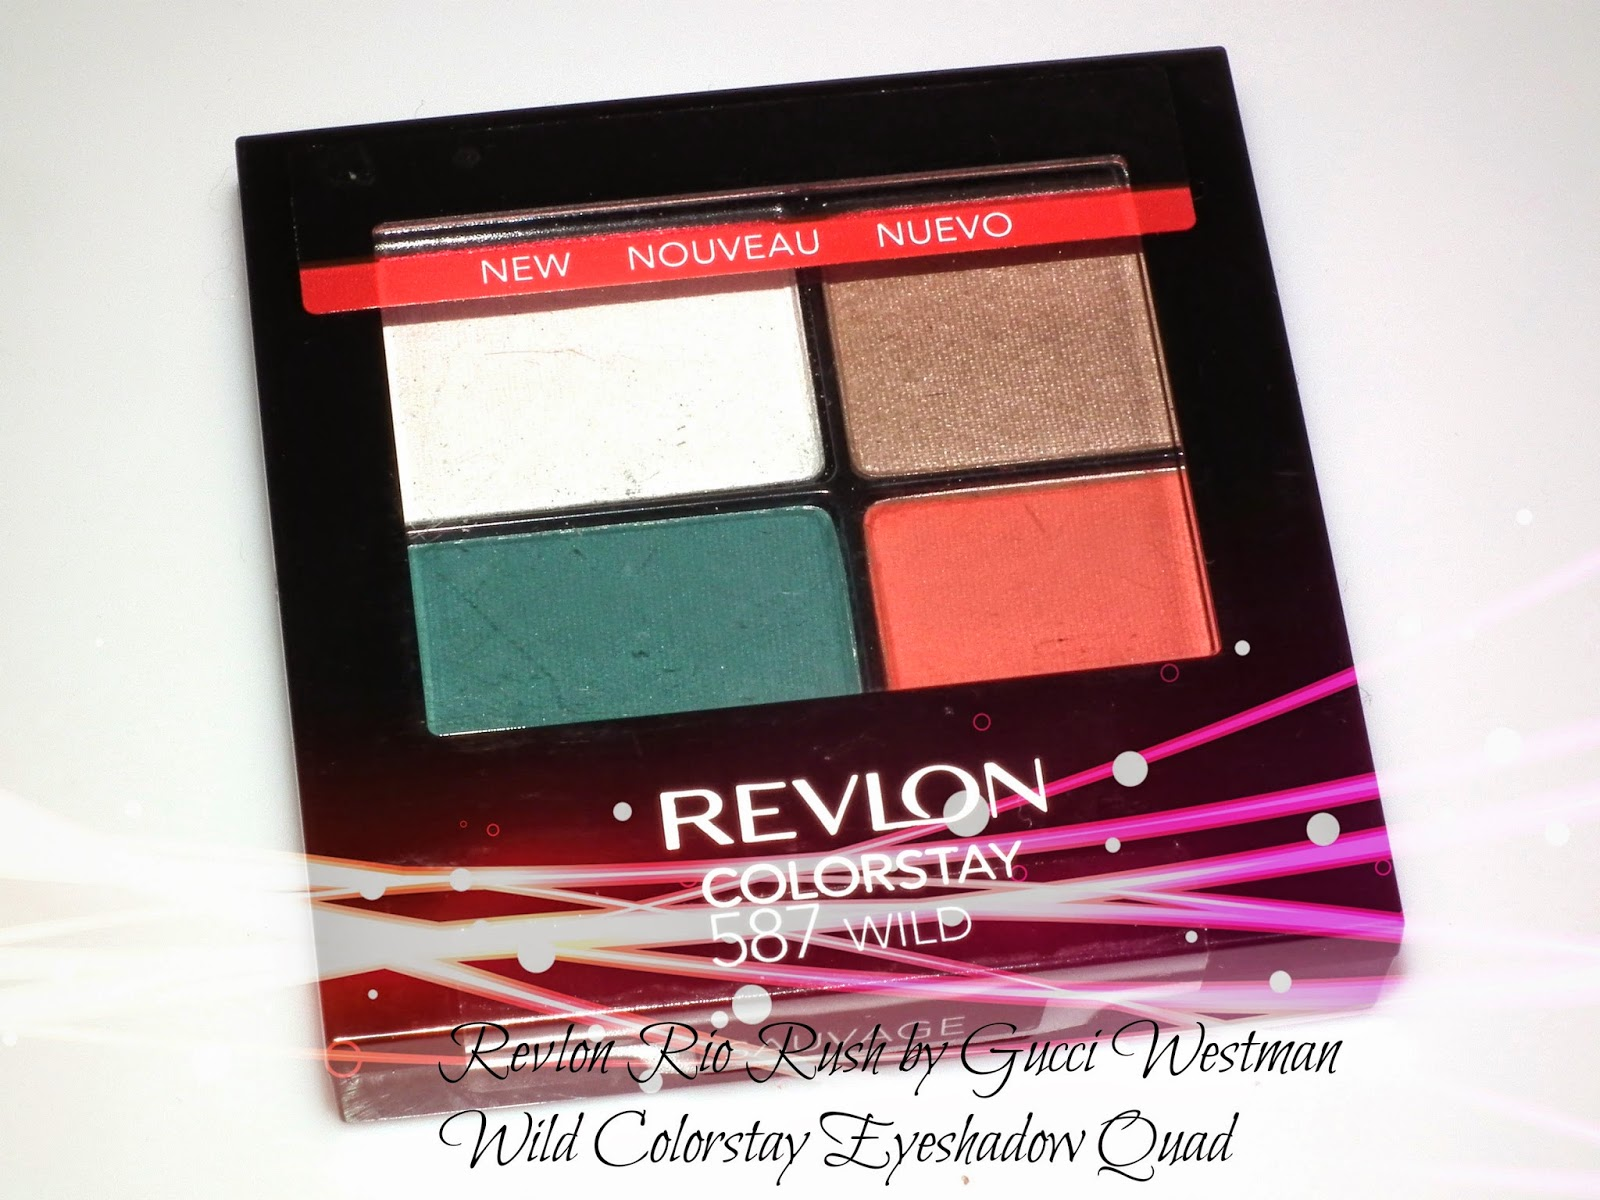 Revlon Rio Rush by Gucci Westman Wild Colorstay Eyeshadow Quad